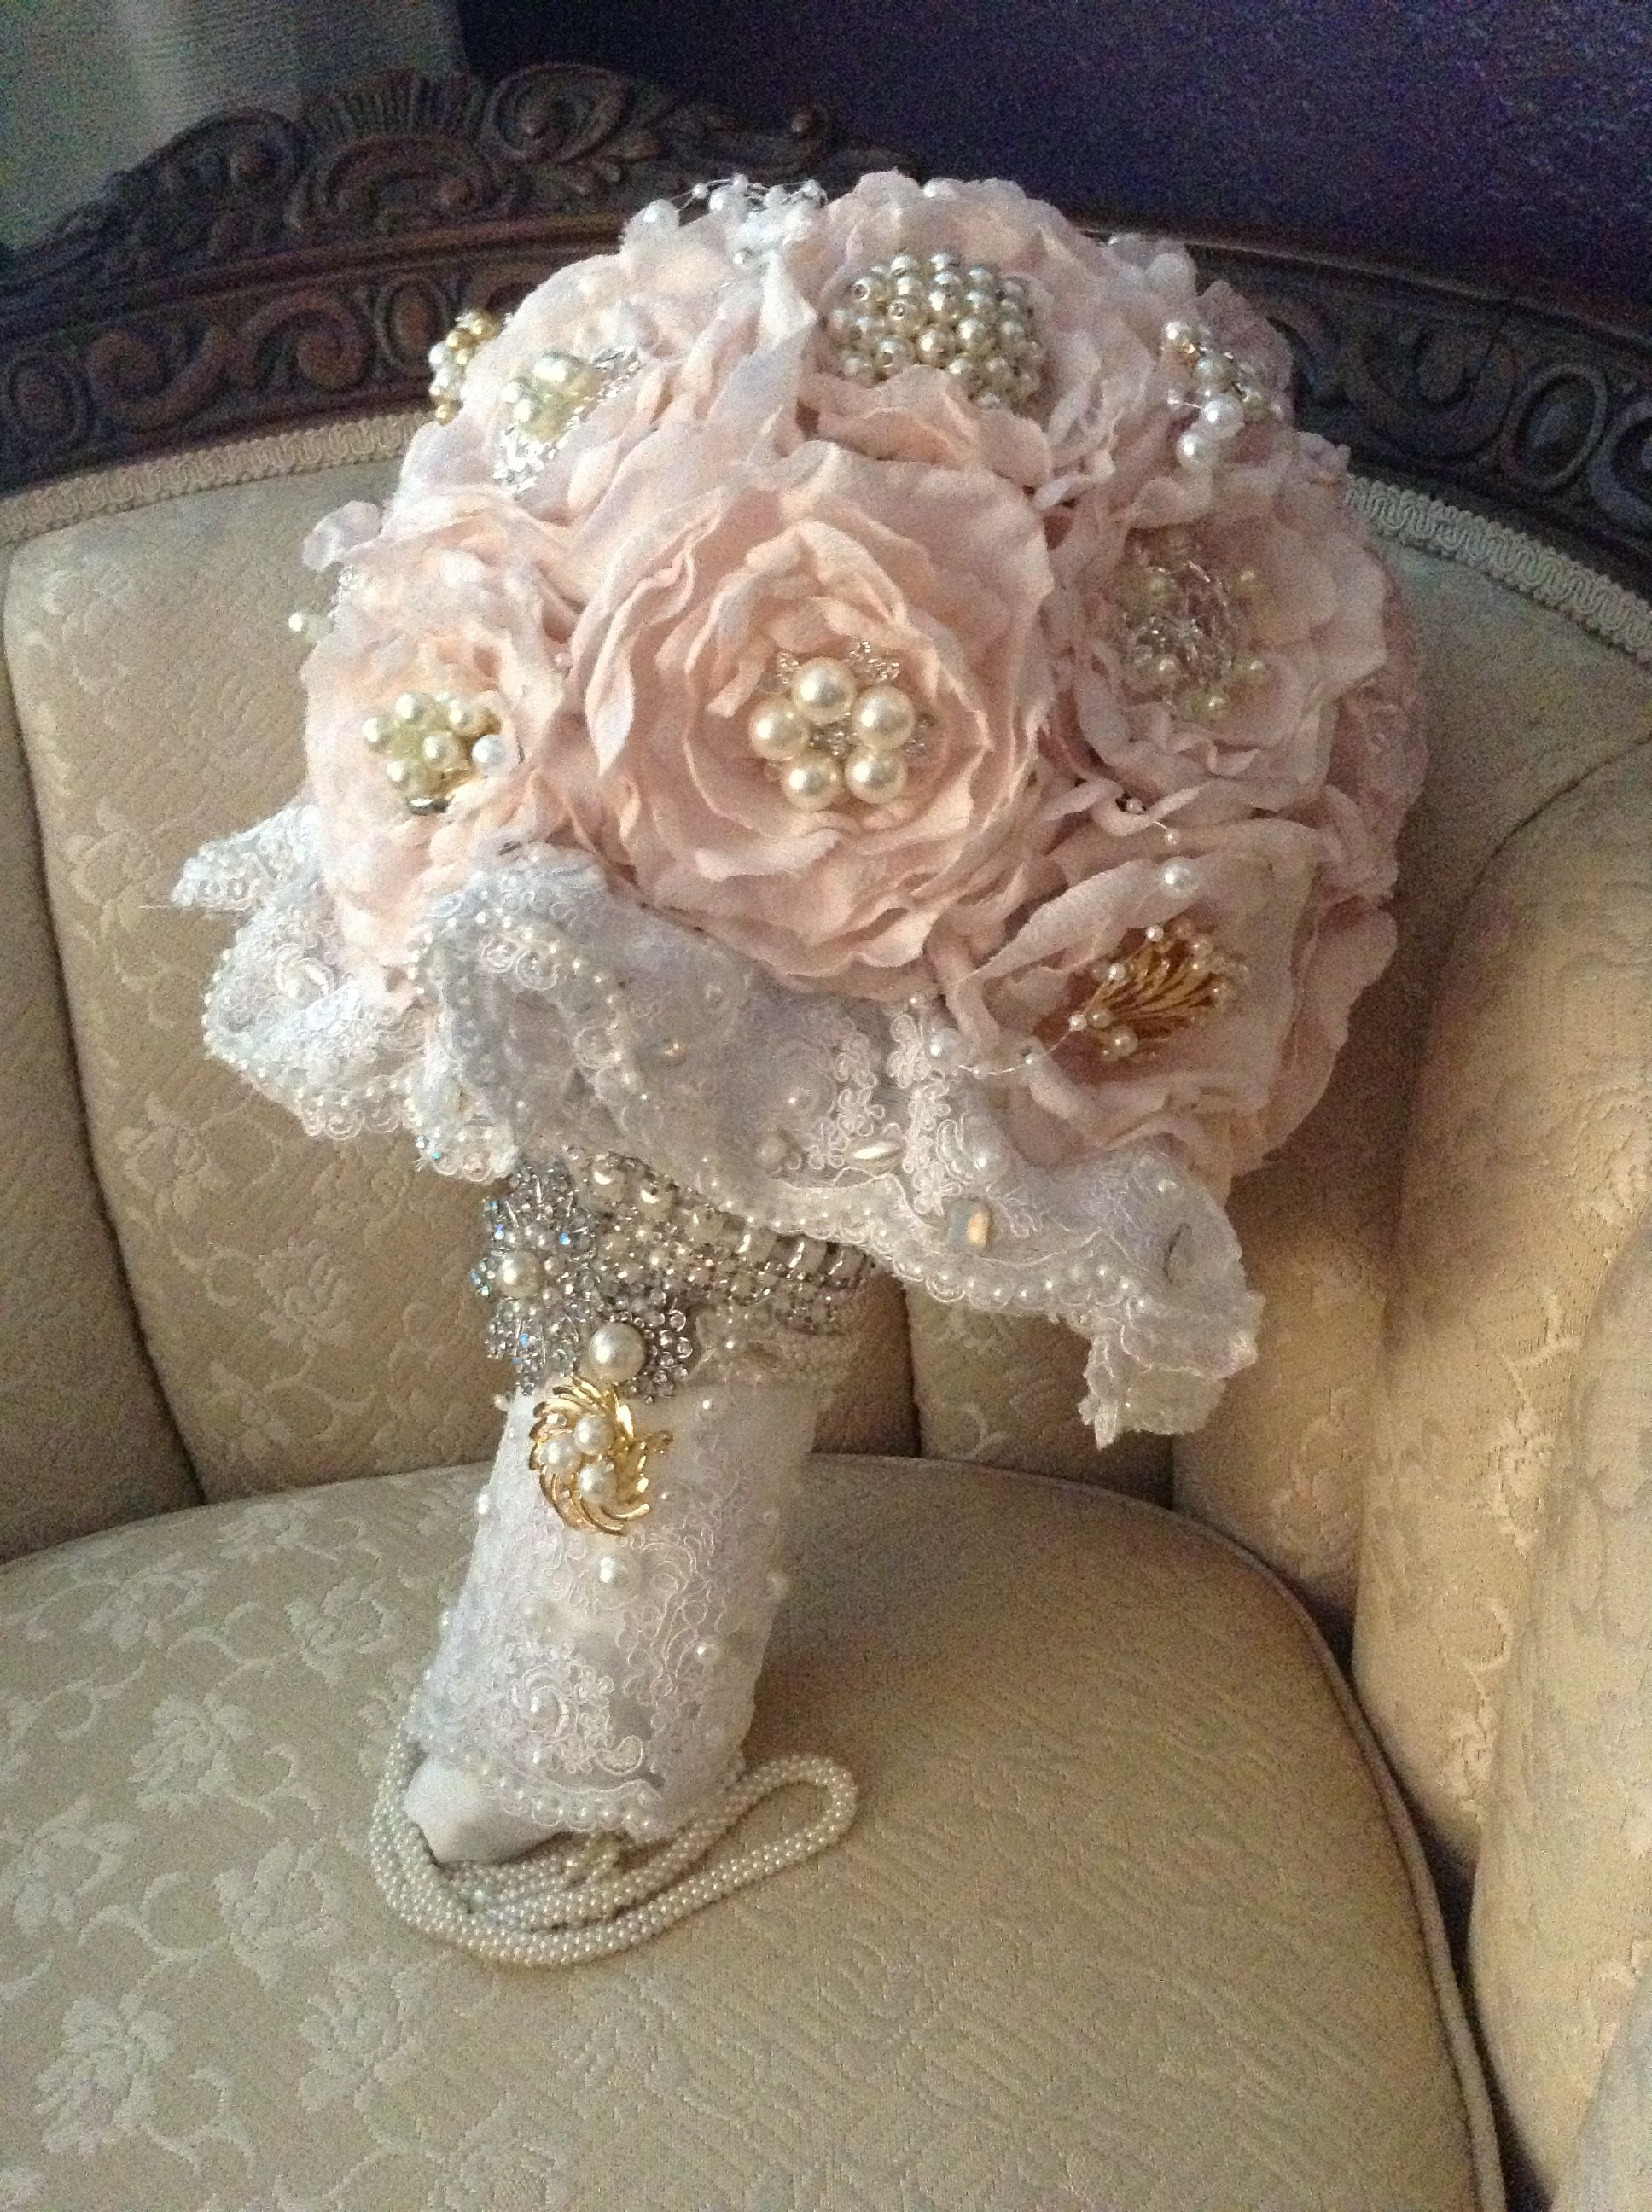 Hand made fabric flowers and beaded lace. Now onto the next tutorial ...